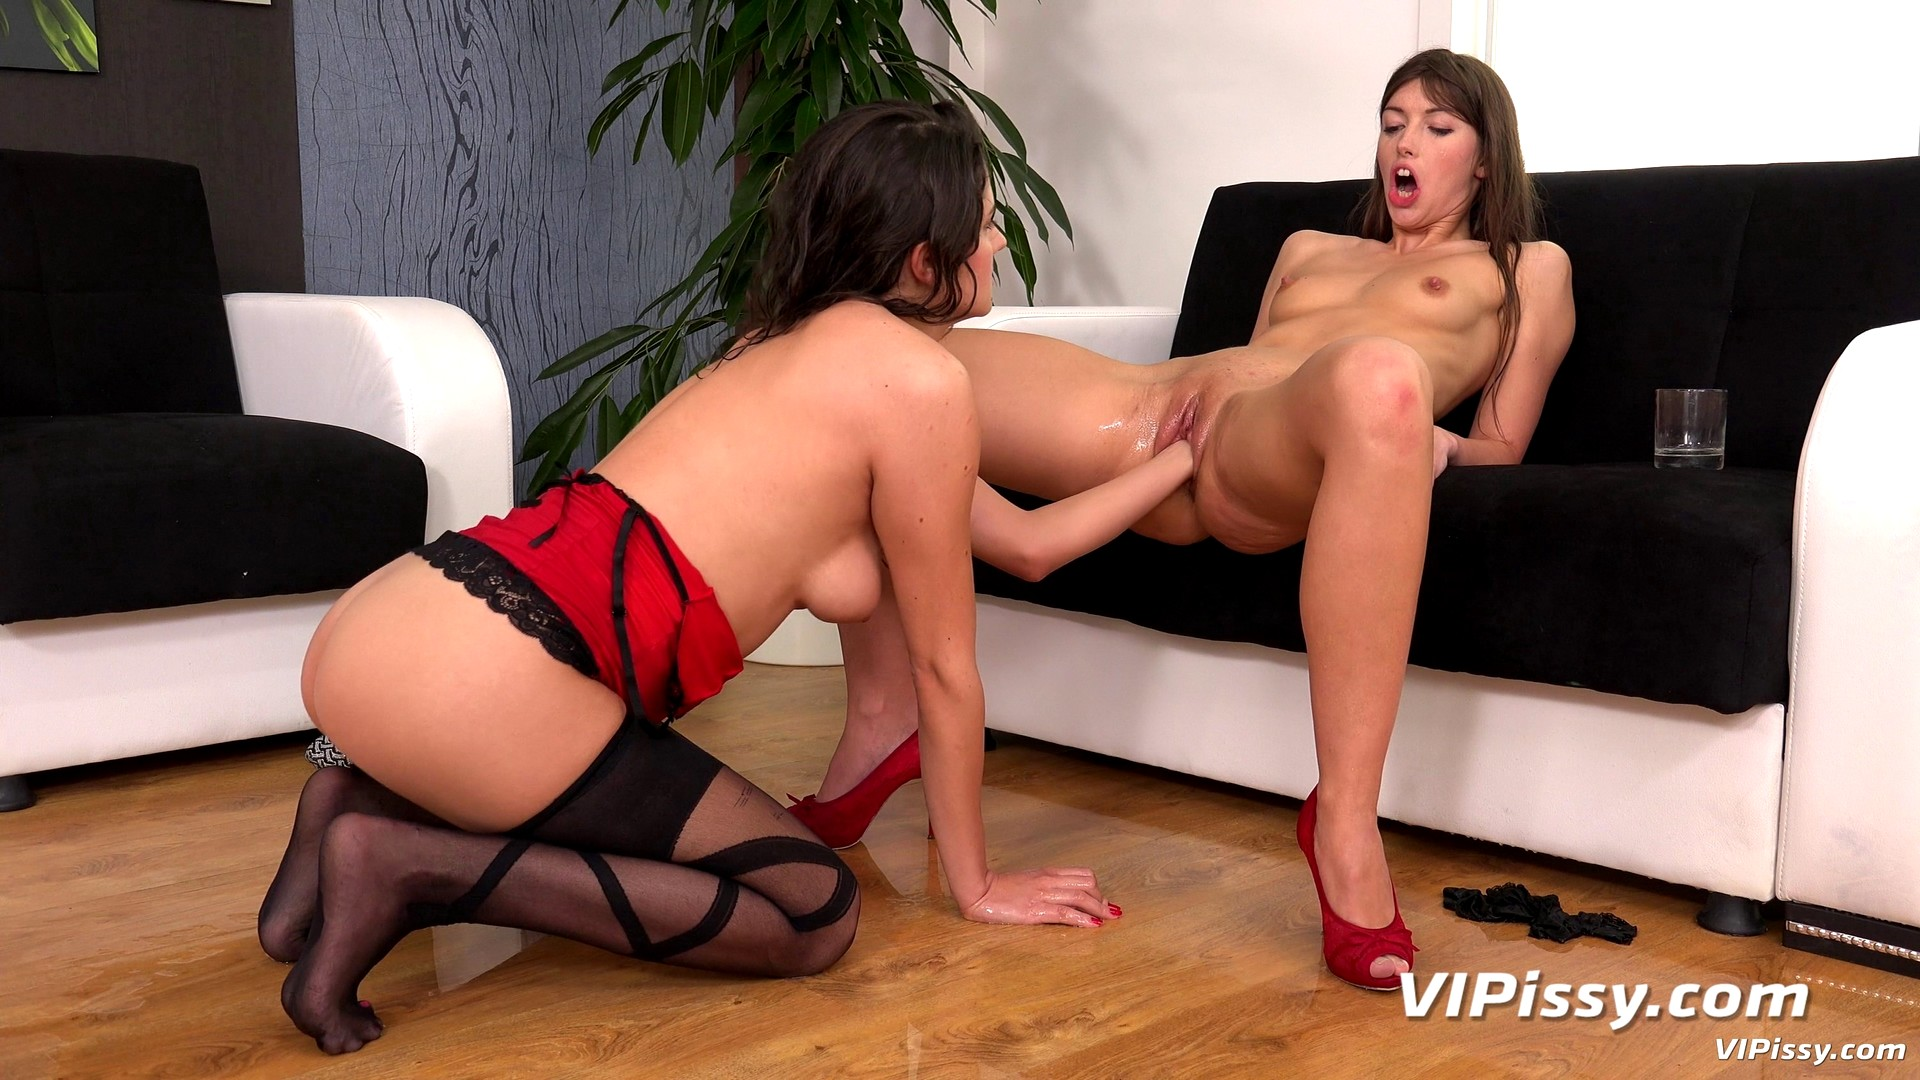 image Francesca dicaprio pissed on and fucked hard 666bukkake